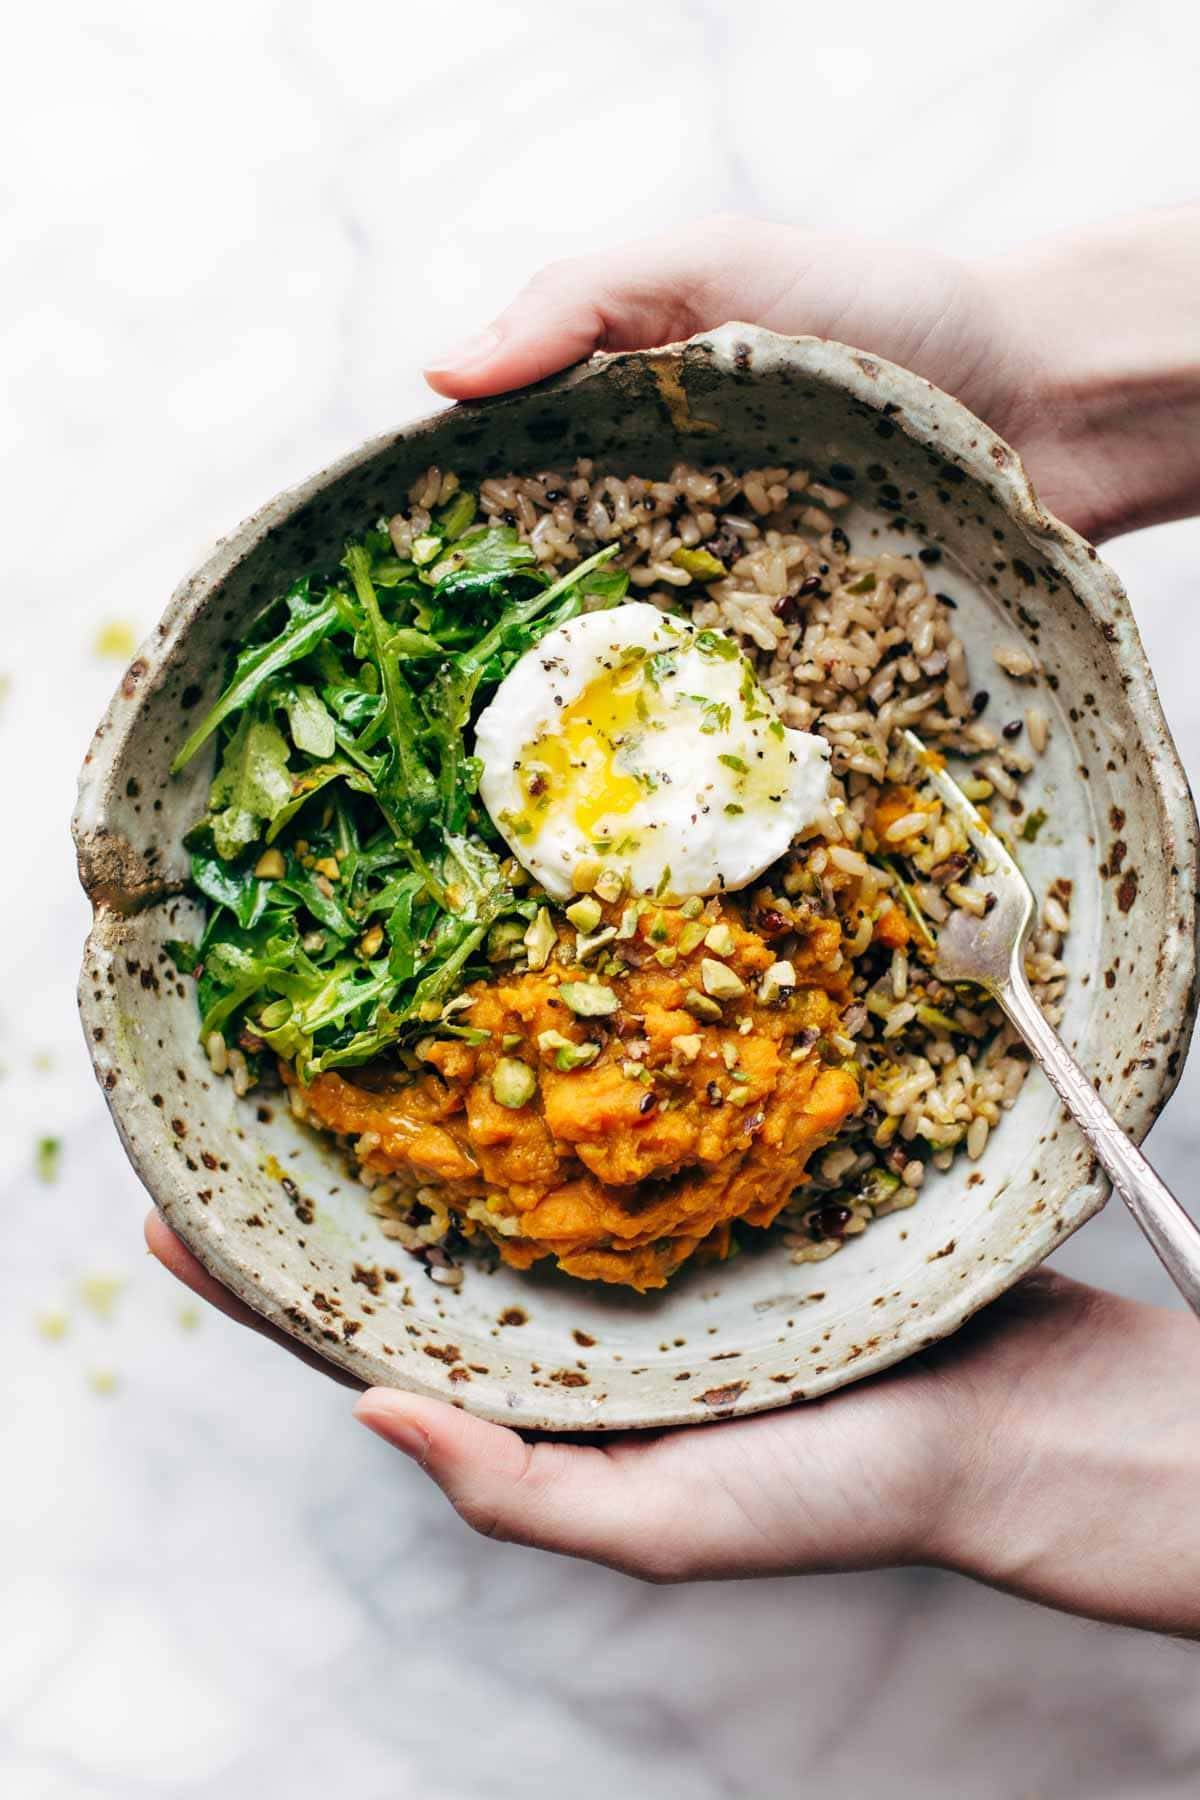 bowl of sweet potatoes and brown rice with an egg and a fork